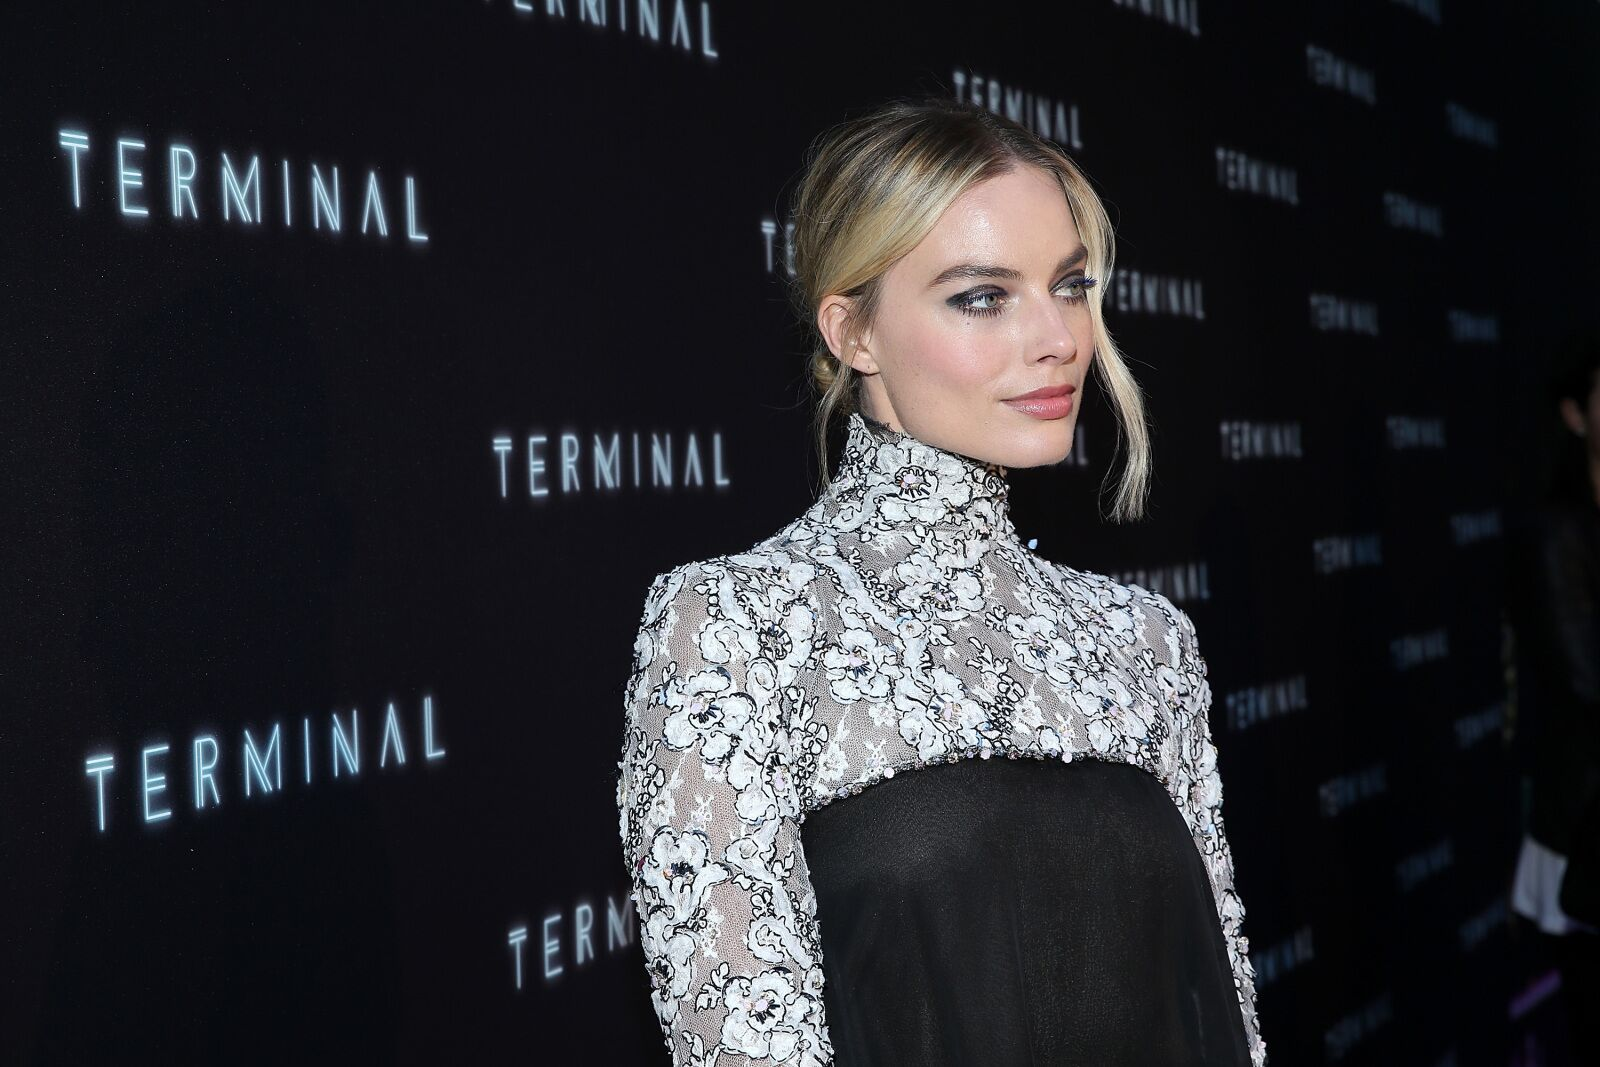 Quentin Tarantino snaps at reporter over valid questions on Margot Robbie's role in OUATIH